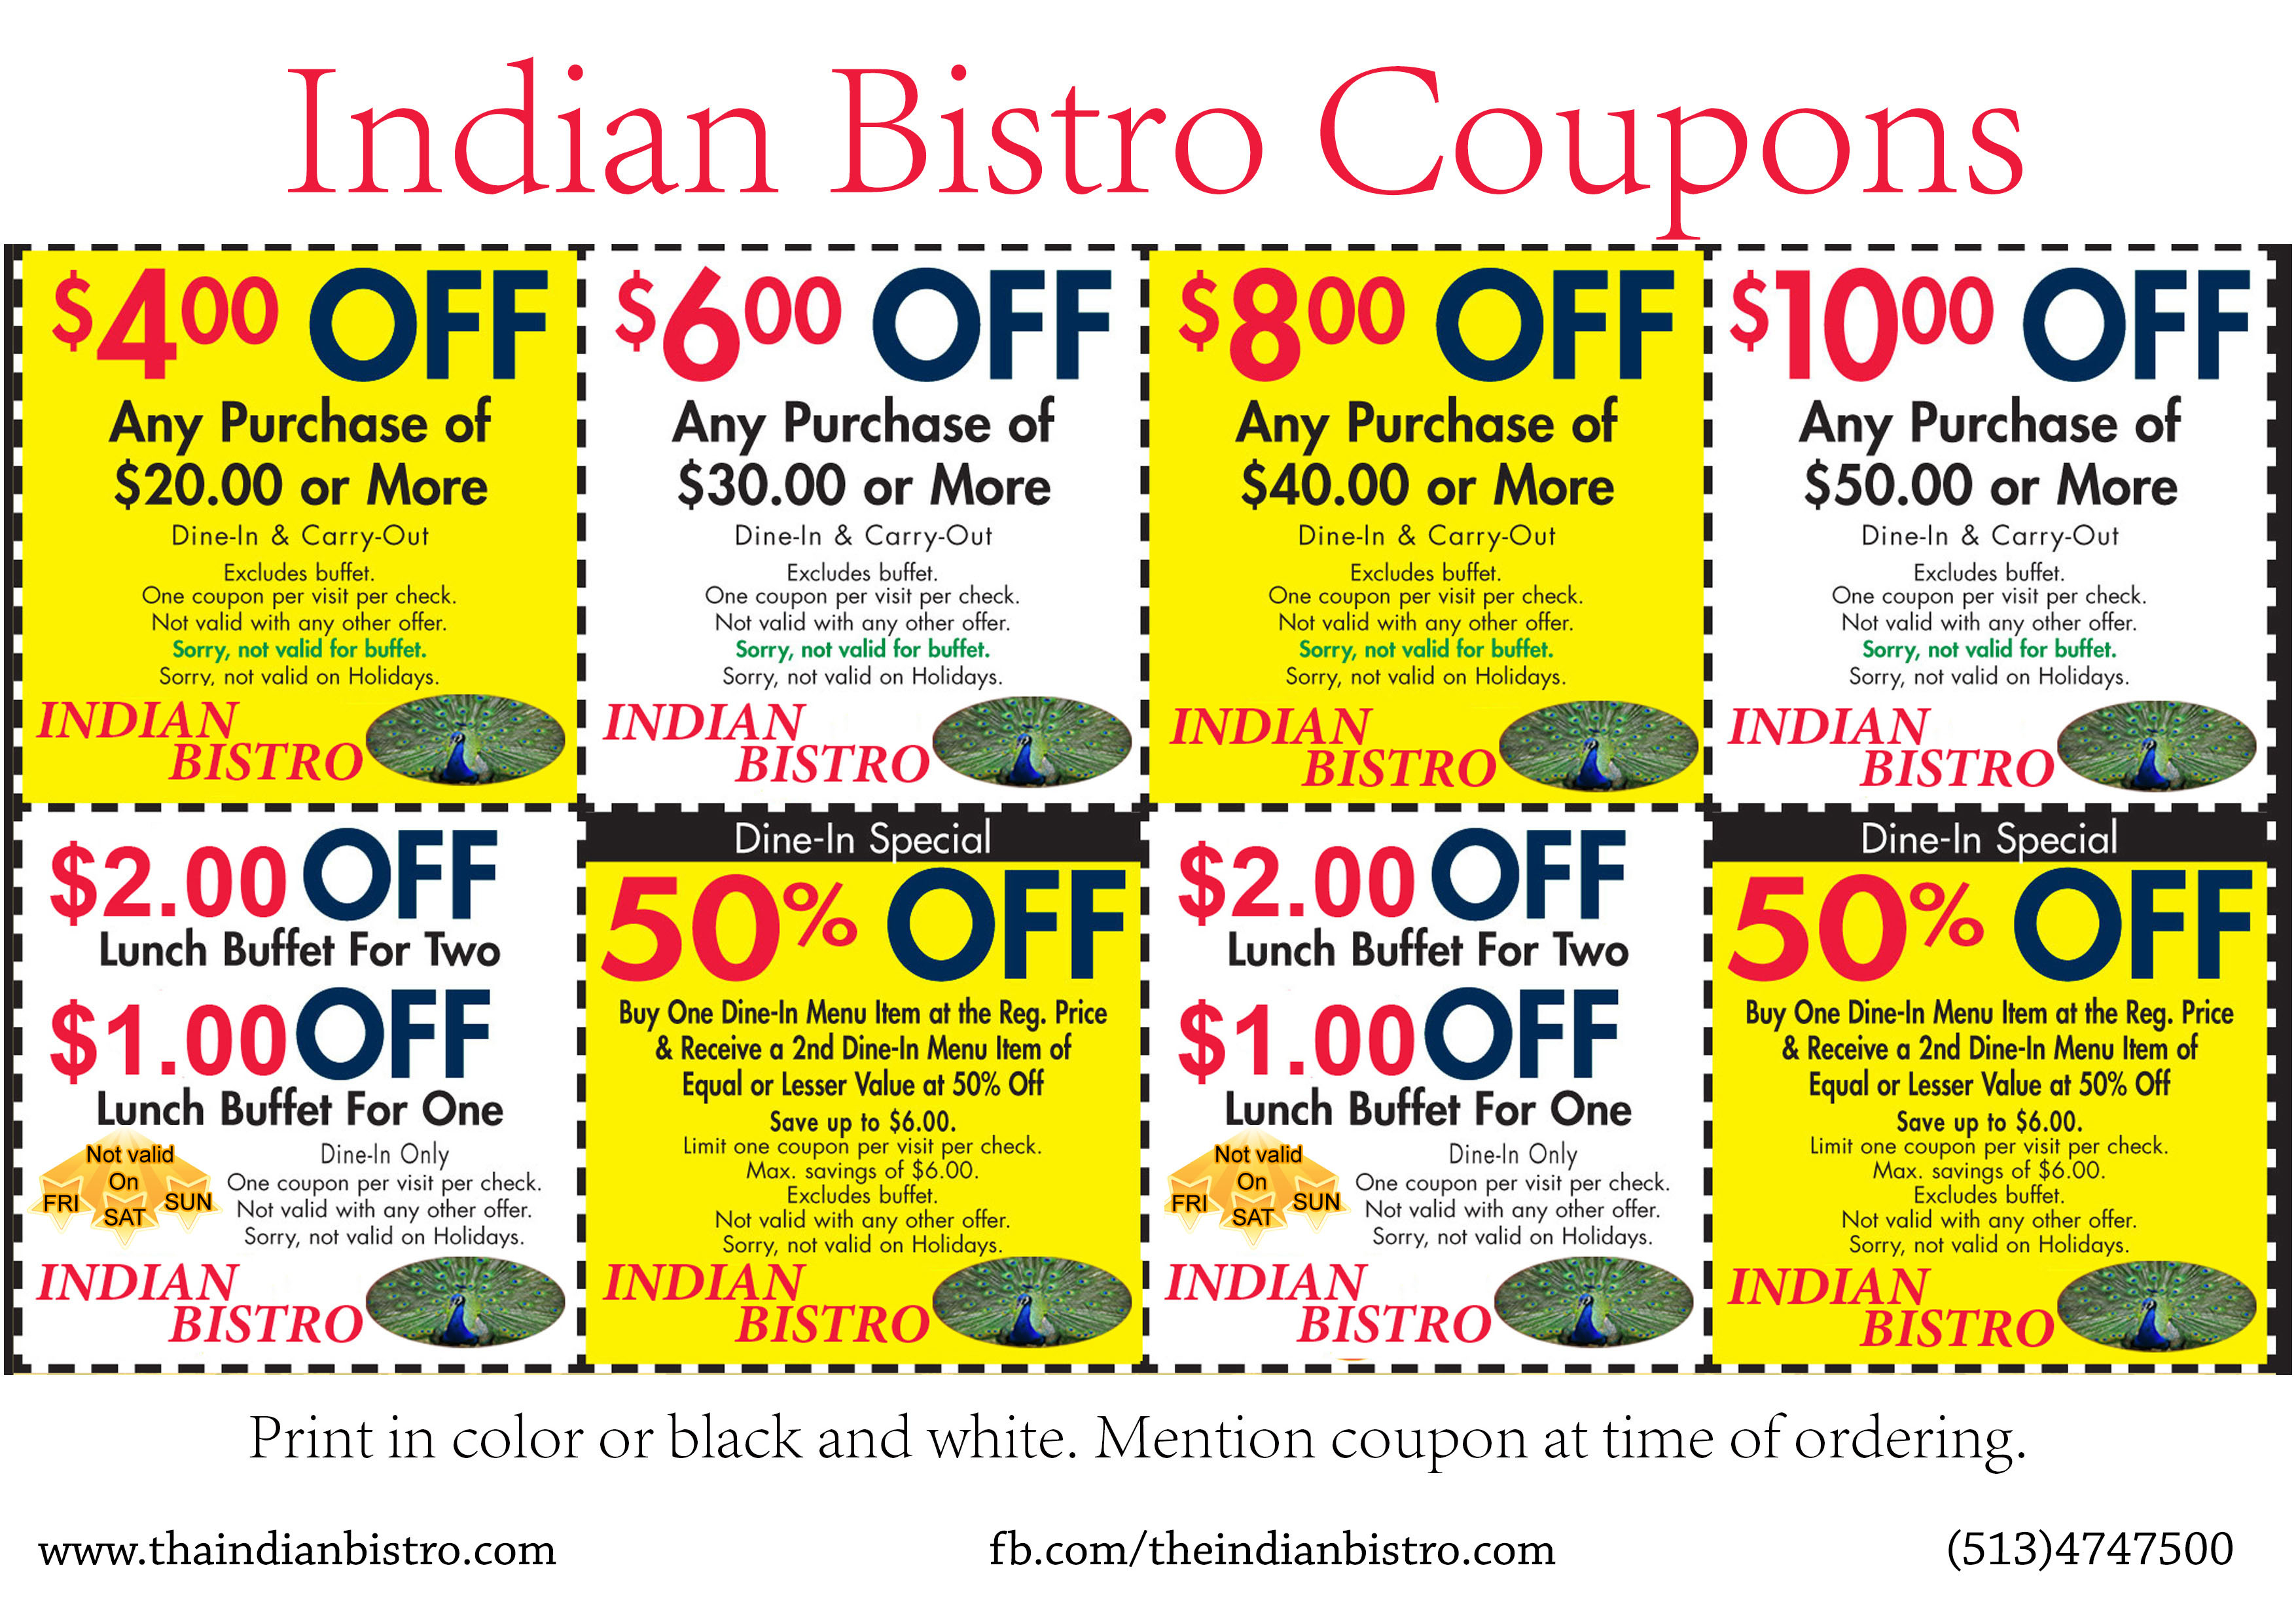 Inspirational Old Country Buffet Printable Coupons   Chart And - Old Country Buffet Printable Coupons Buy One Get One Free